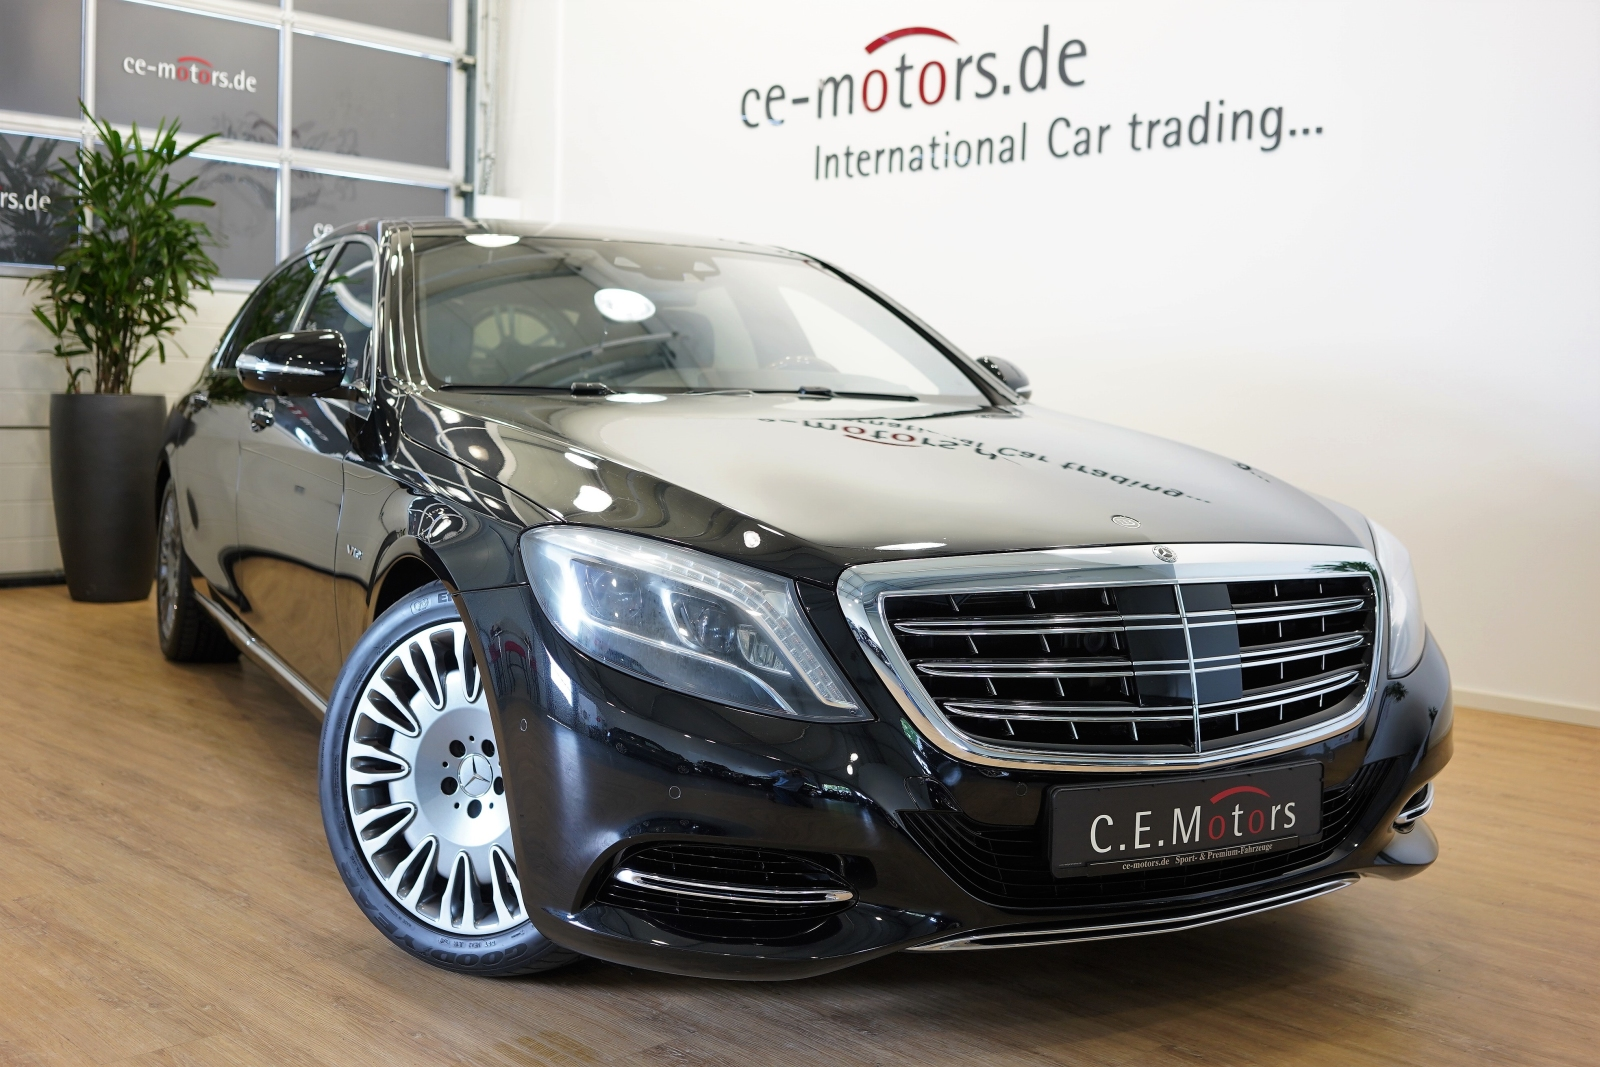 Mercedes-Benz S 600 Maybach BRABUS *First-Class-Fond*HEAD-UP*, Jahr 2015, Benzin